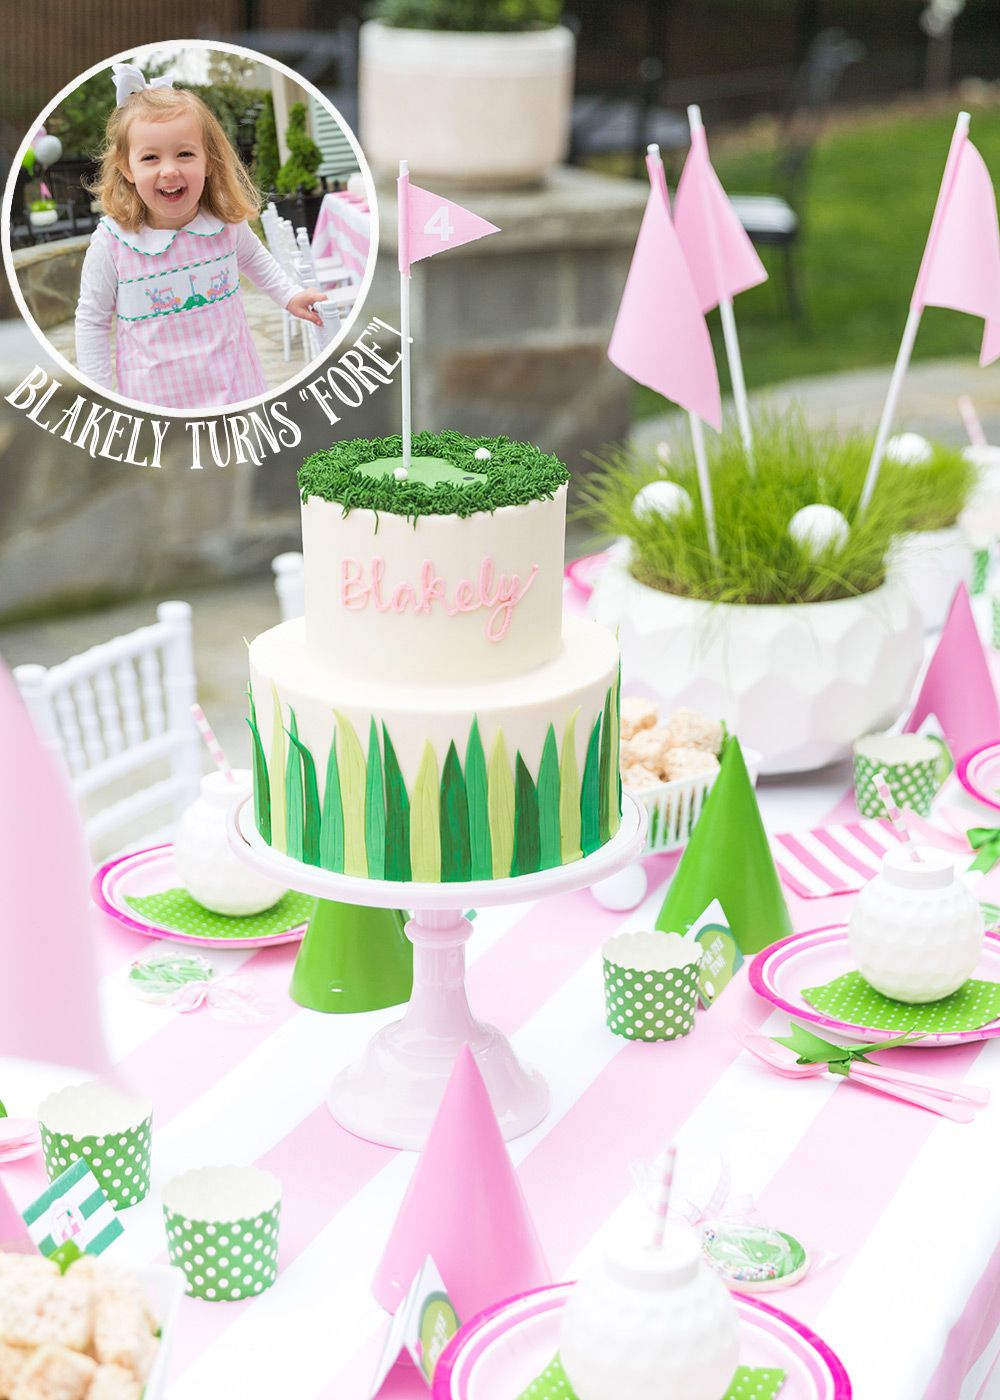 Blakely Turns FORE Golf Partee First Birthday Cakes 4th